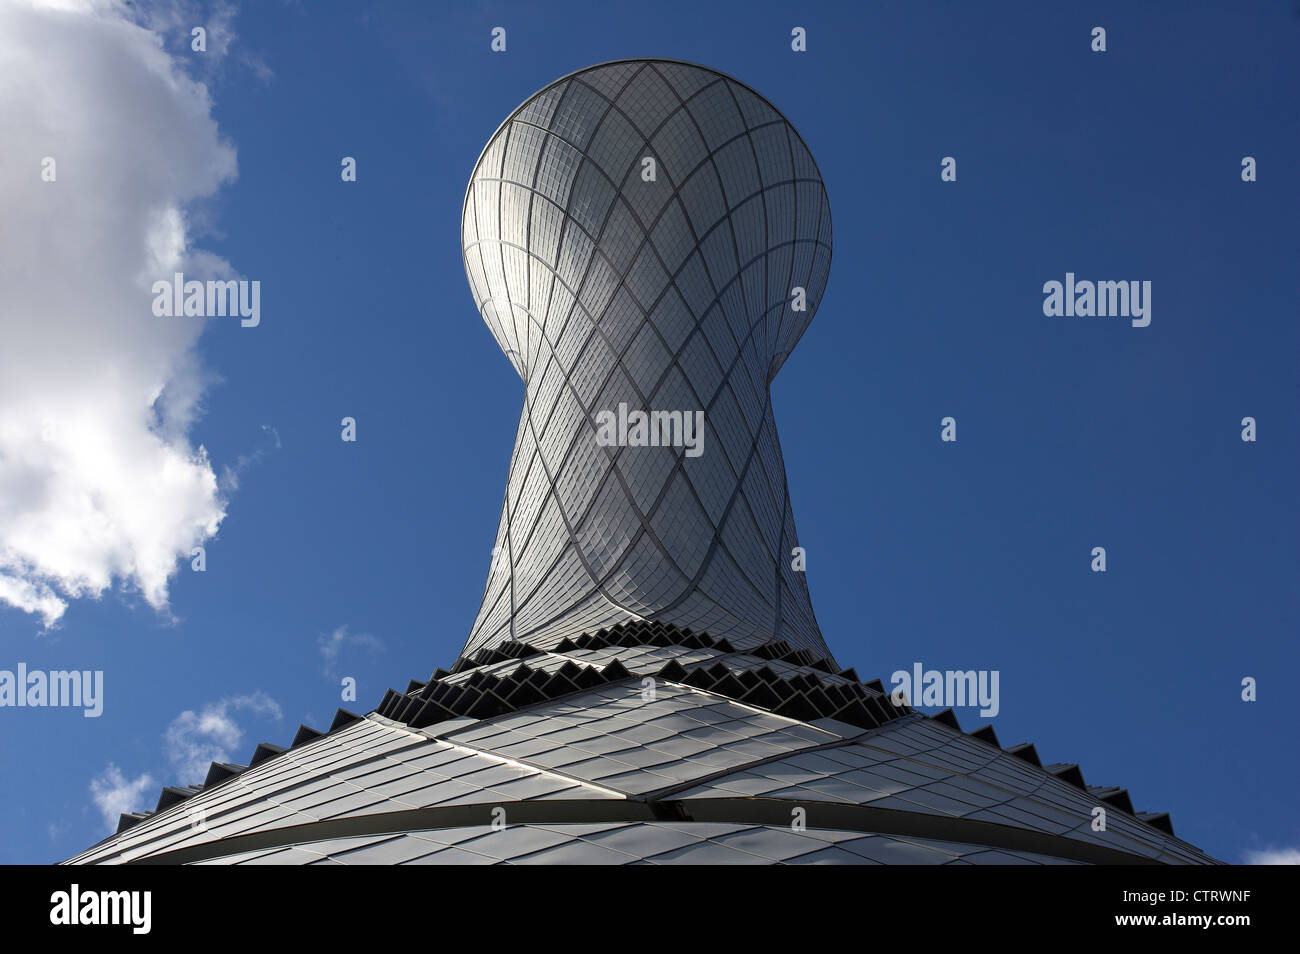 air traffic control tower triangular vents viewed from base - Stock Image